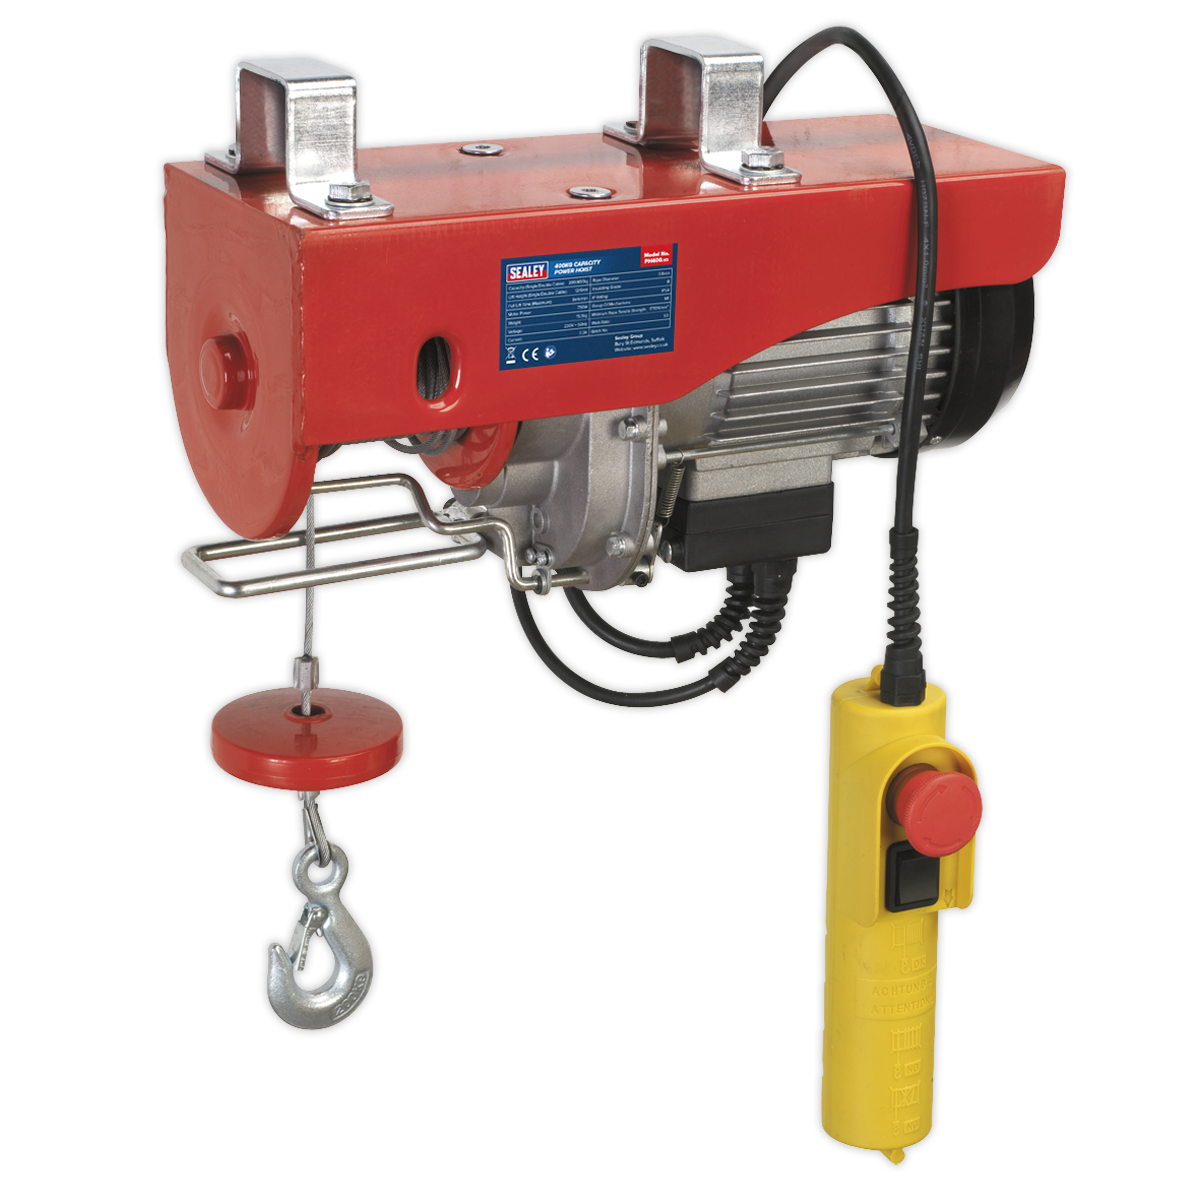 Power Hoist 230V 1ph 400kg Capacity   SEALEY PH400 by Sealey   New